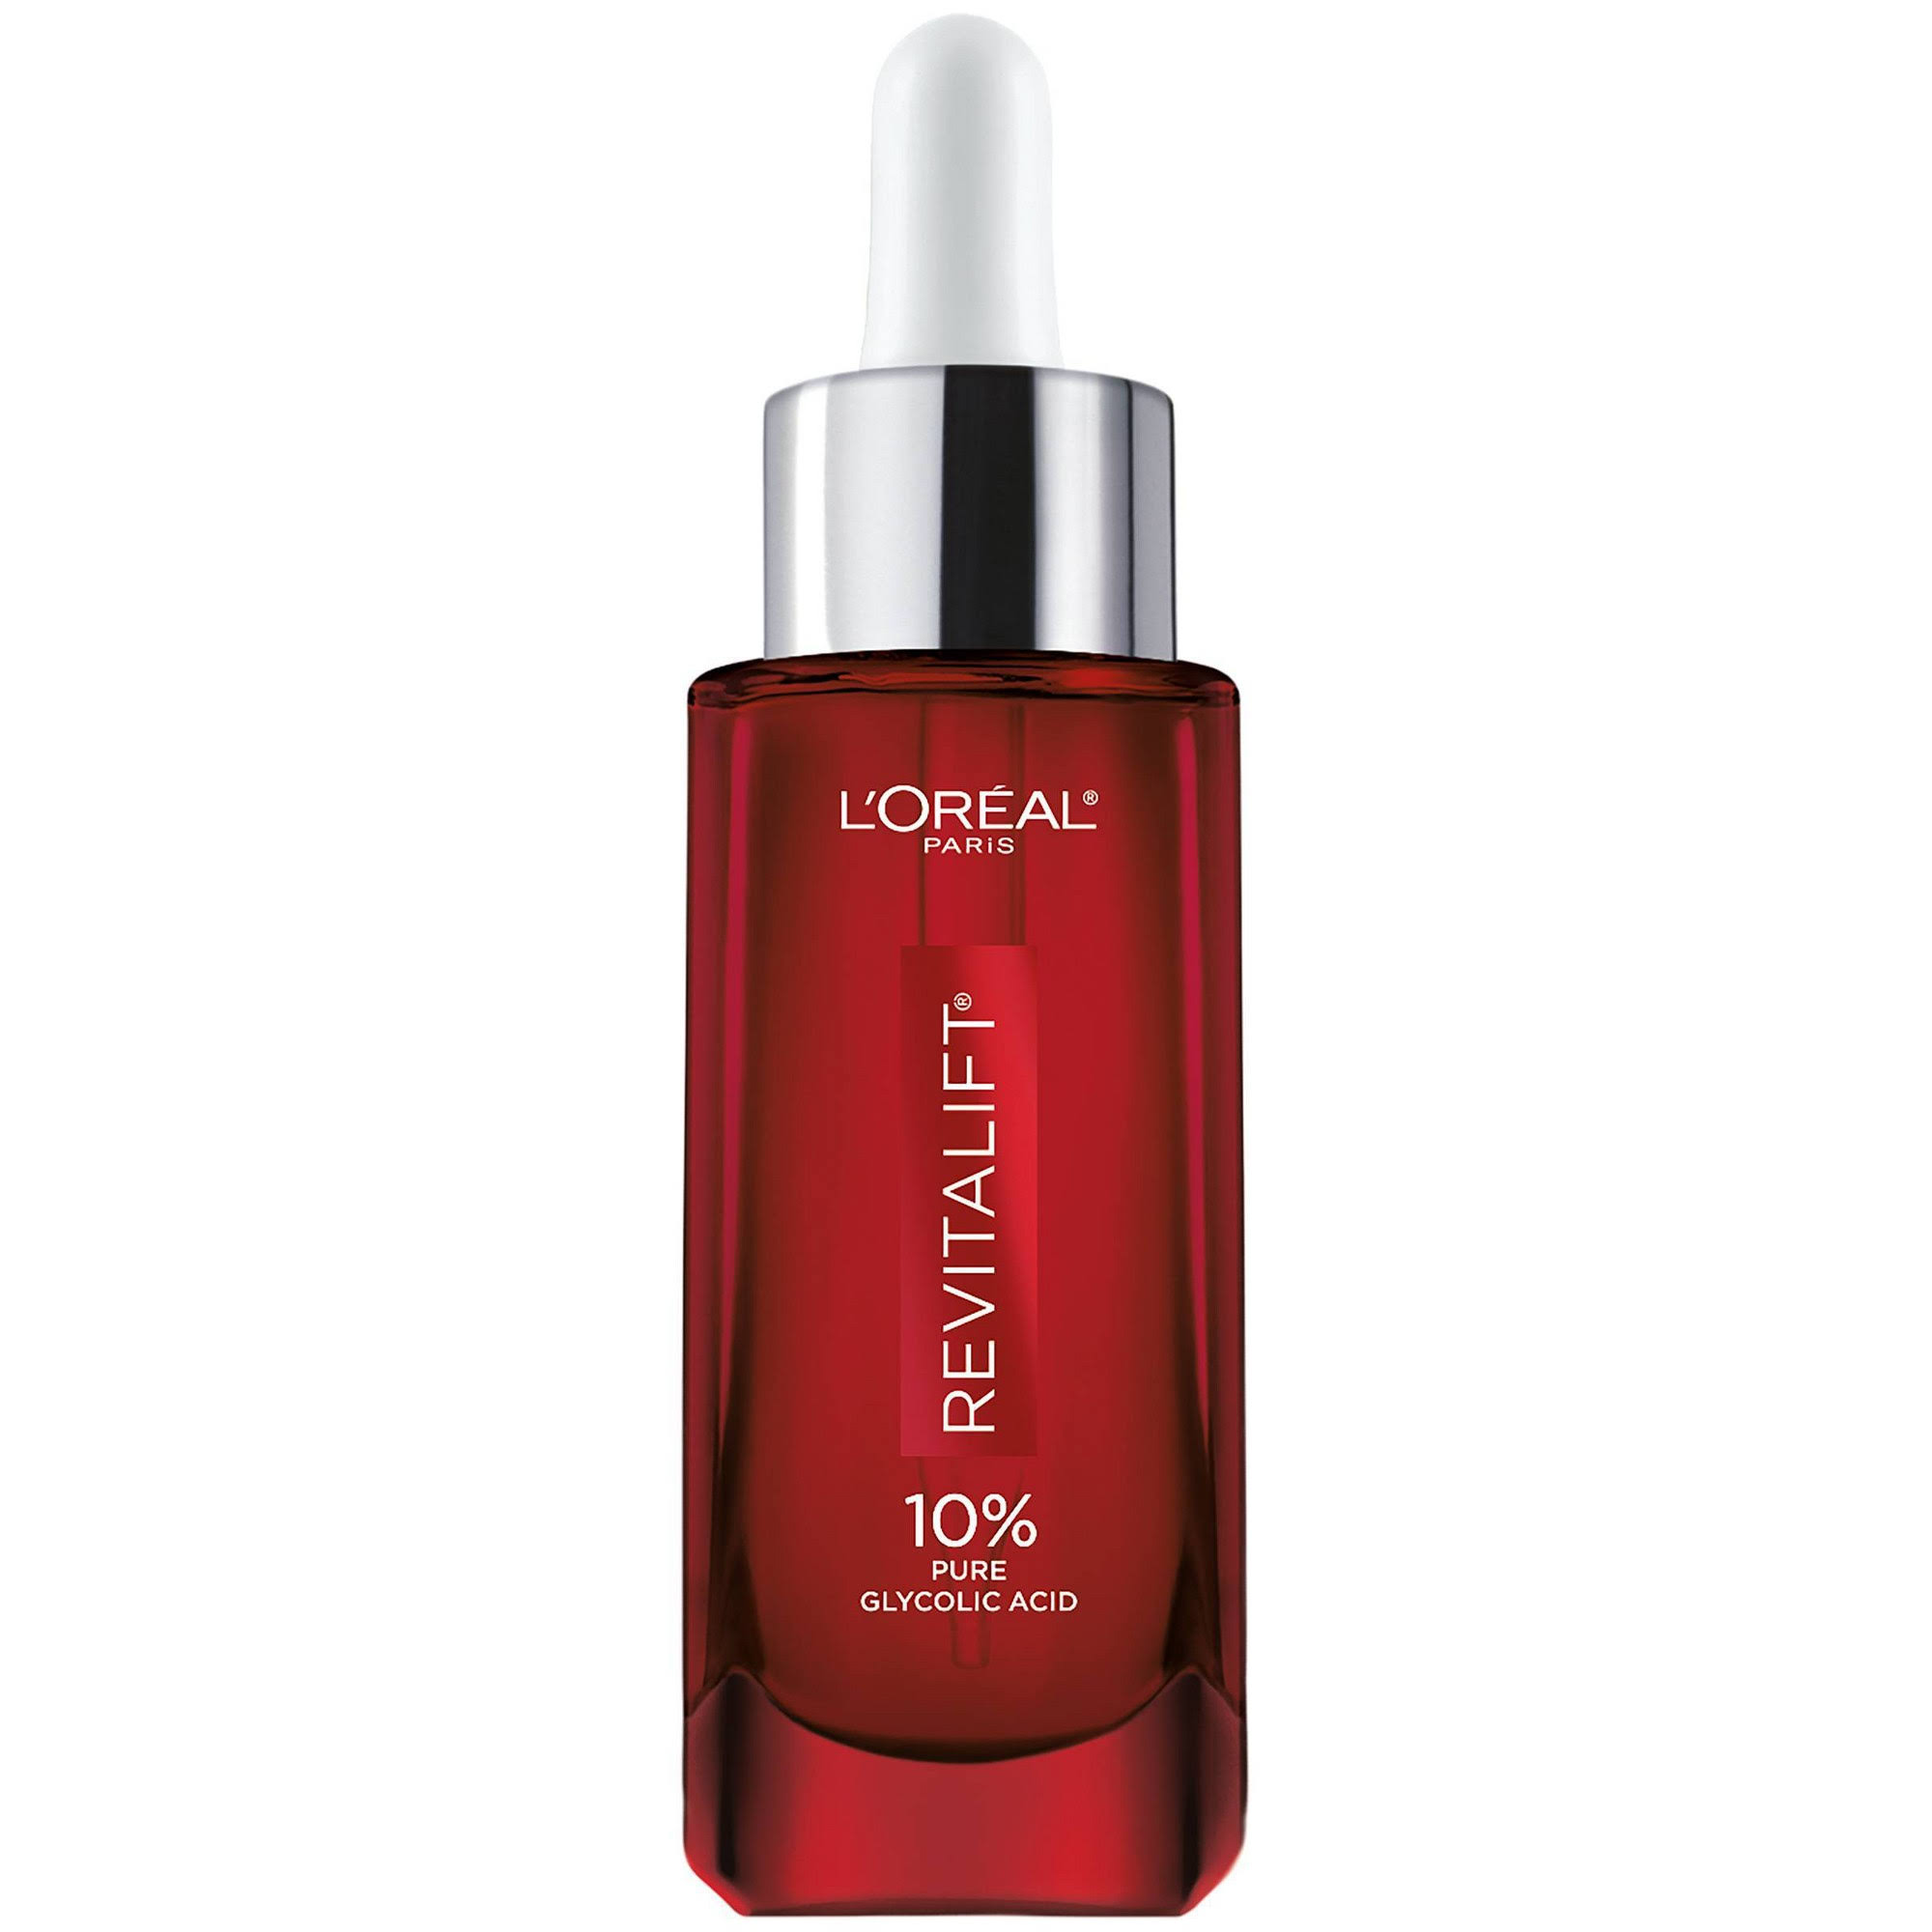 L'Oréal Paris Revitalift Derm Intensives Glycolic Acid Serum - 1oz